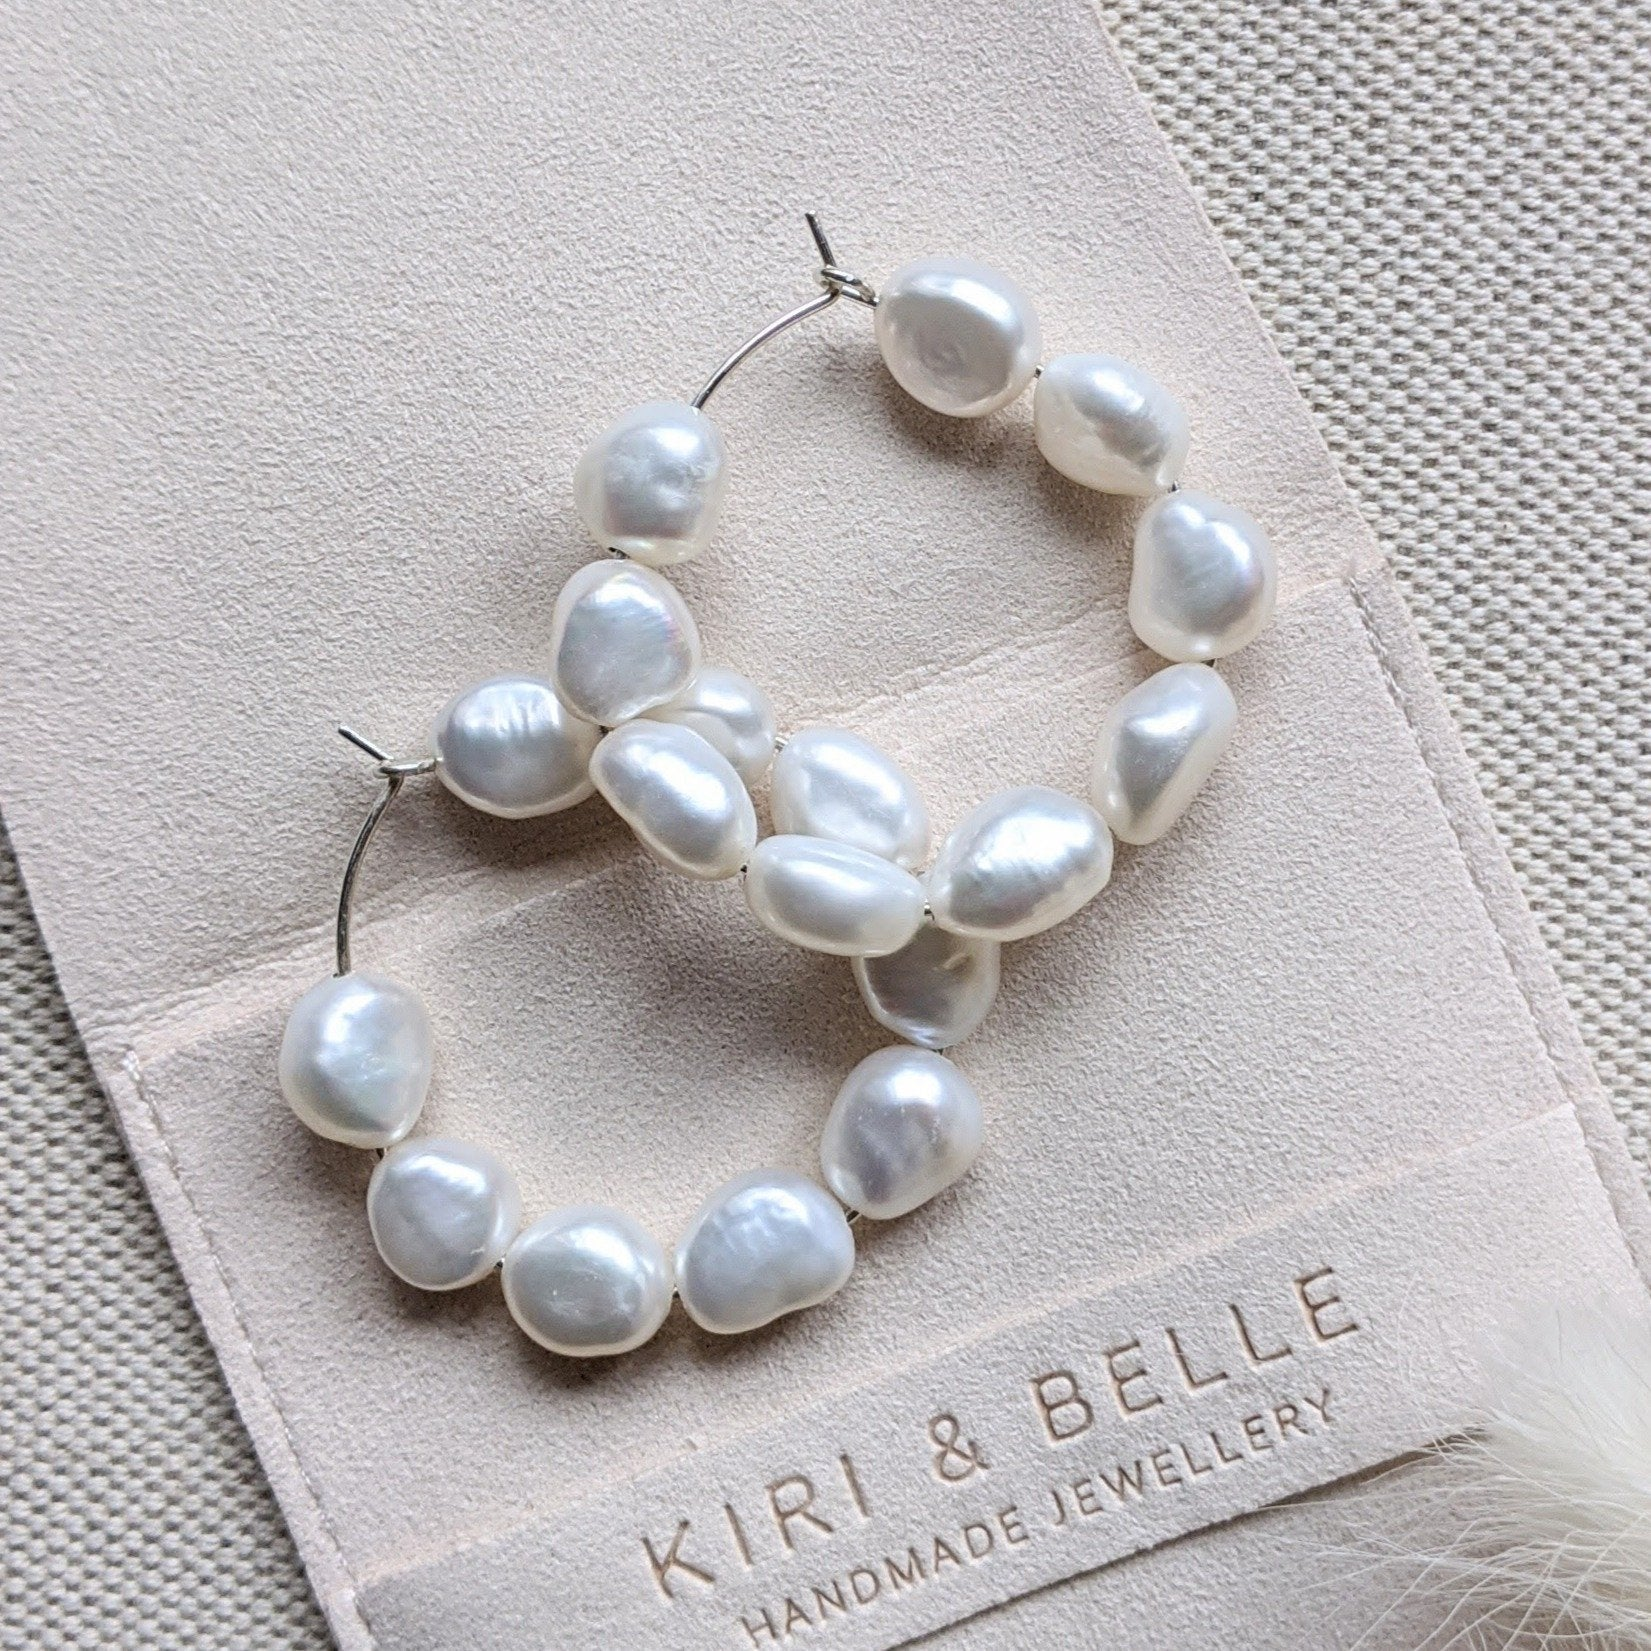 Kiara hoop earrings with 9 9mm baroque freshwater pearls on faux suede pouch